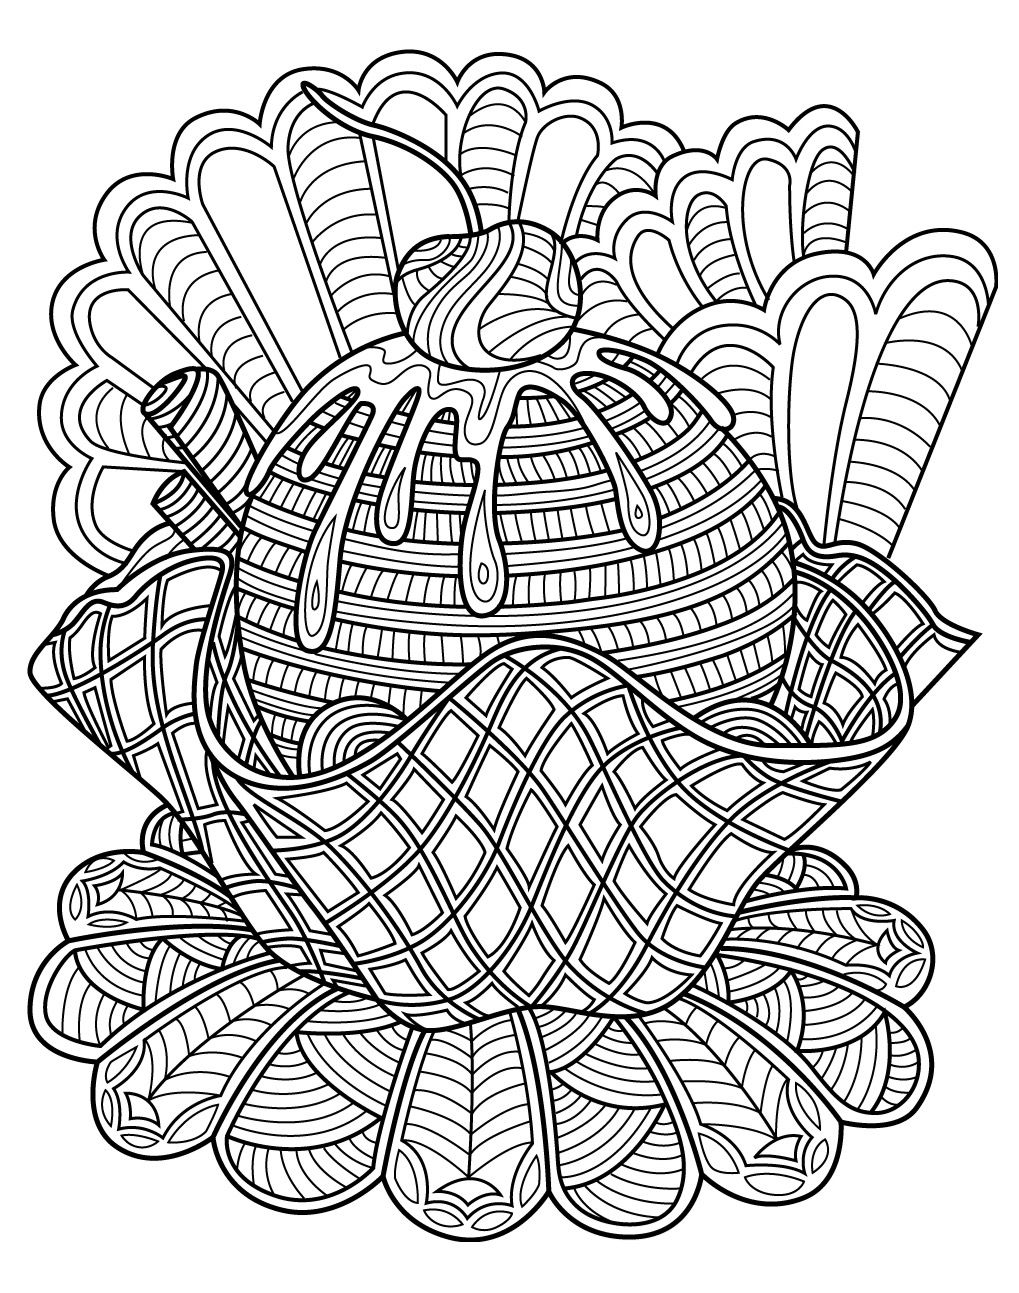 Sweets Coloring Page Colorish Free Coloring App For Adults By